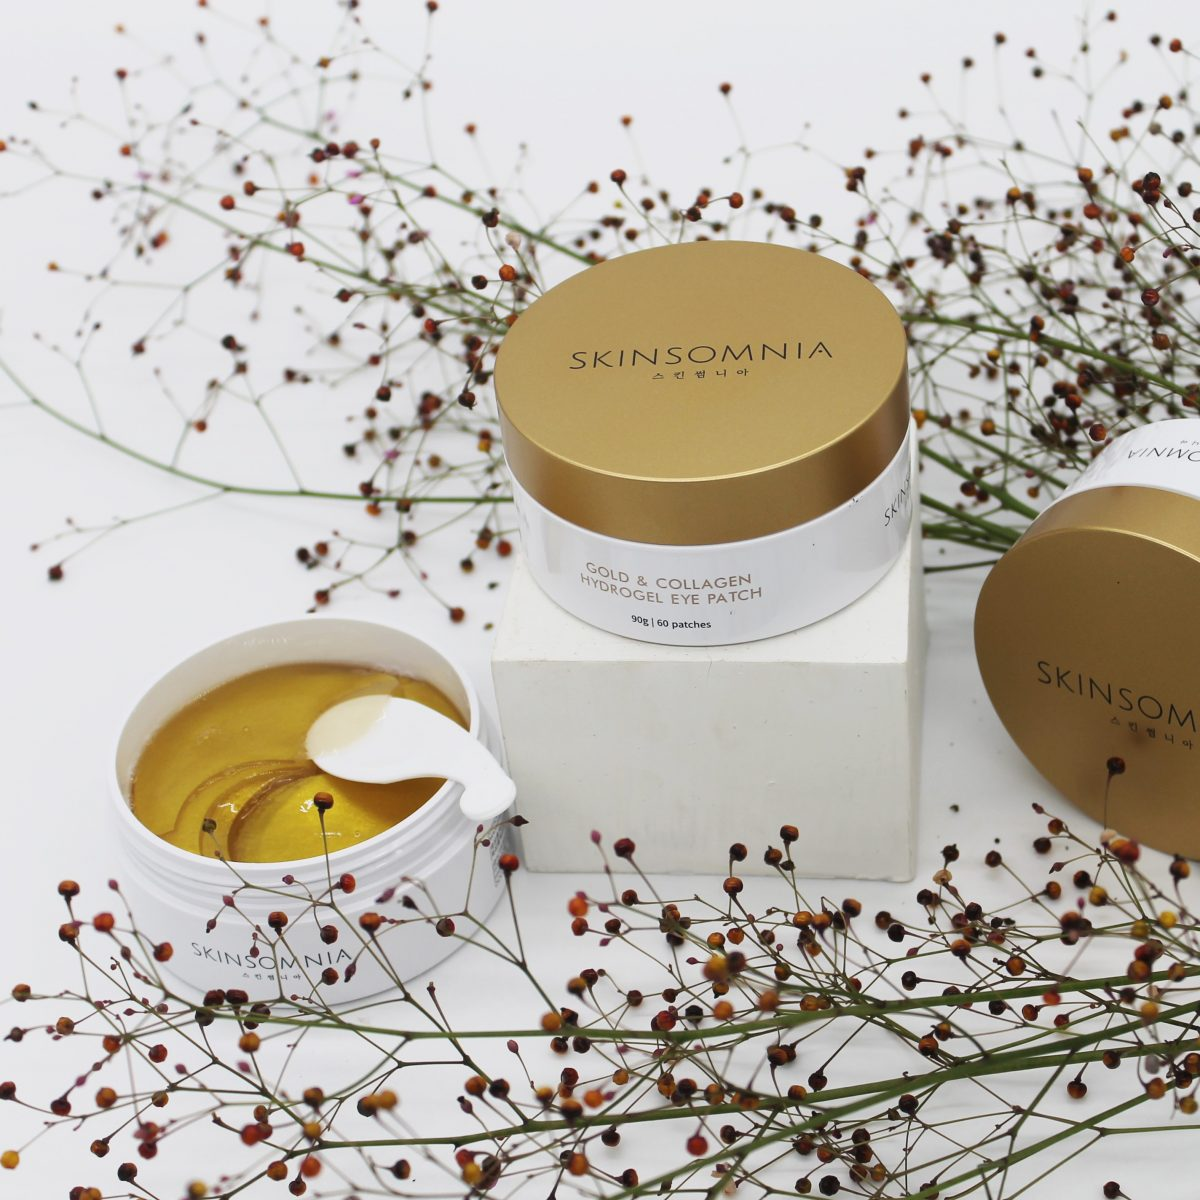 SKINSOMNIA GOLD & COLLAGEN HYDROGEL EYE PATCH